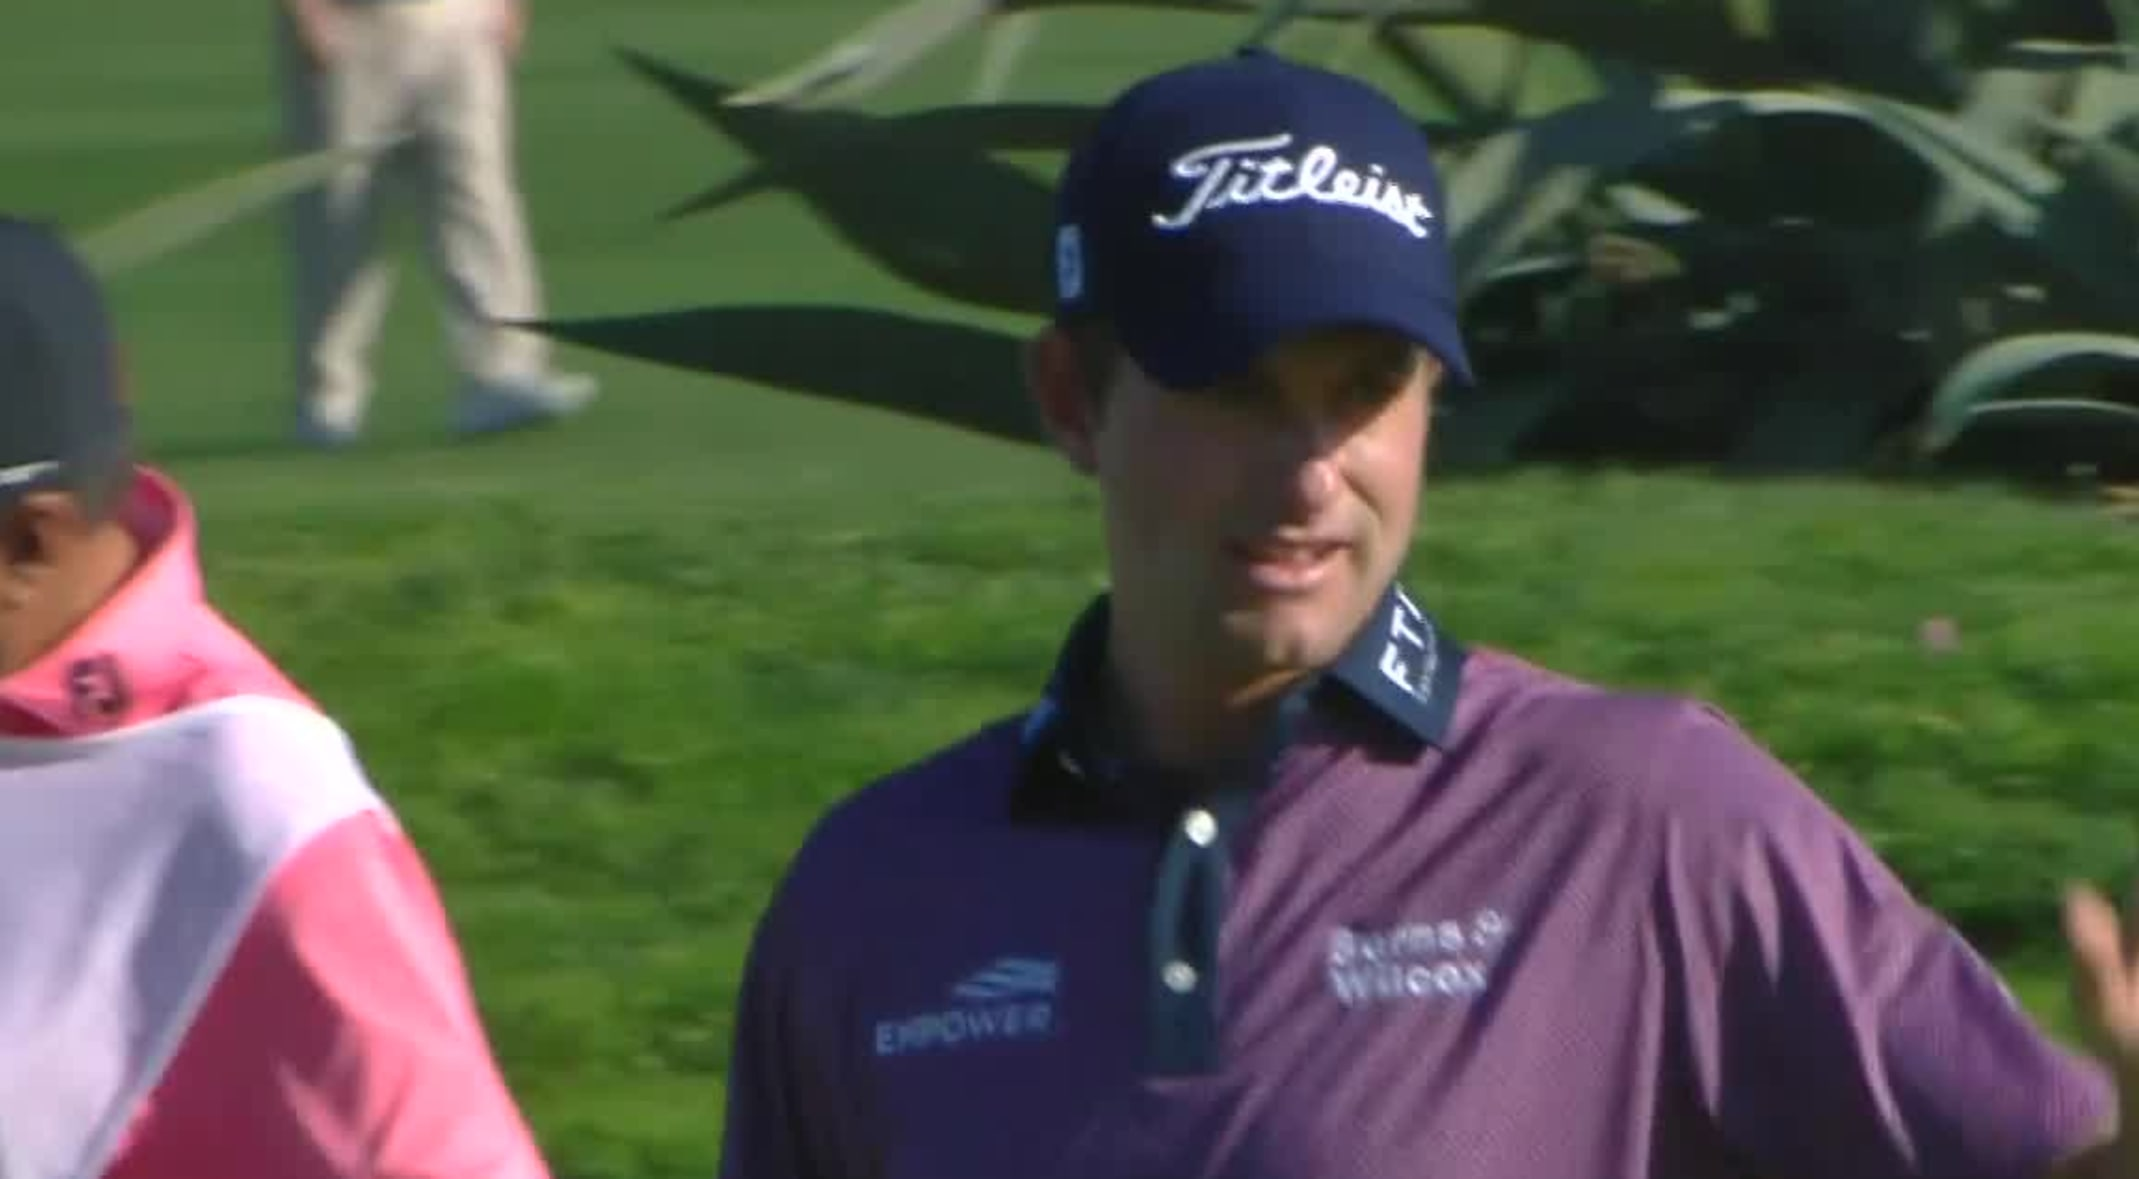 Webb Simpson Round 3 Recap at 2019 Waste Management Phoenix Open